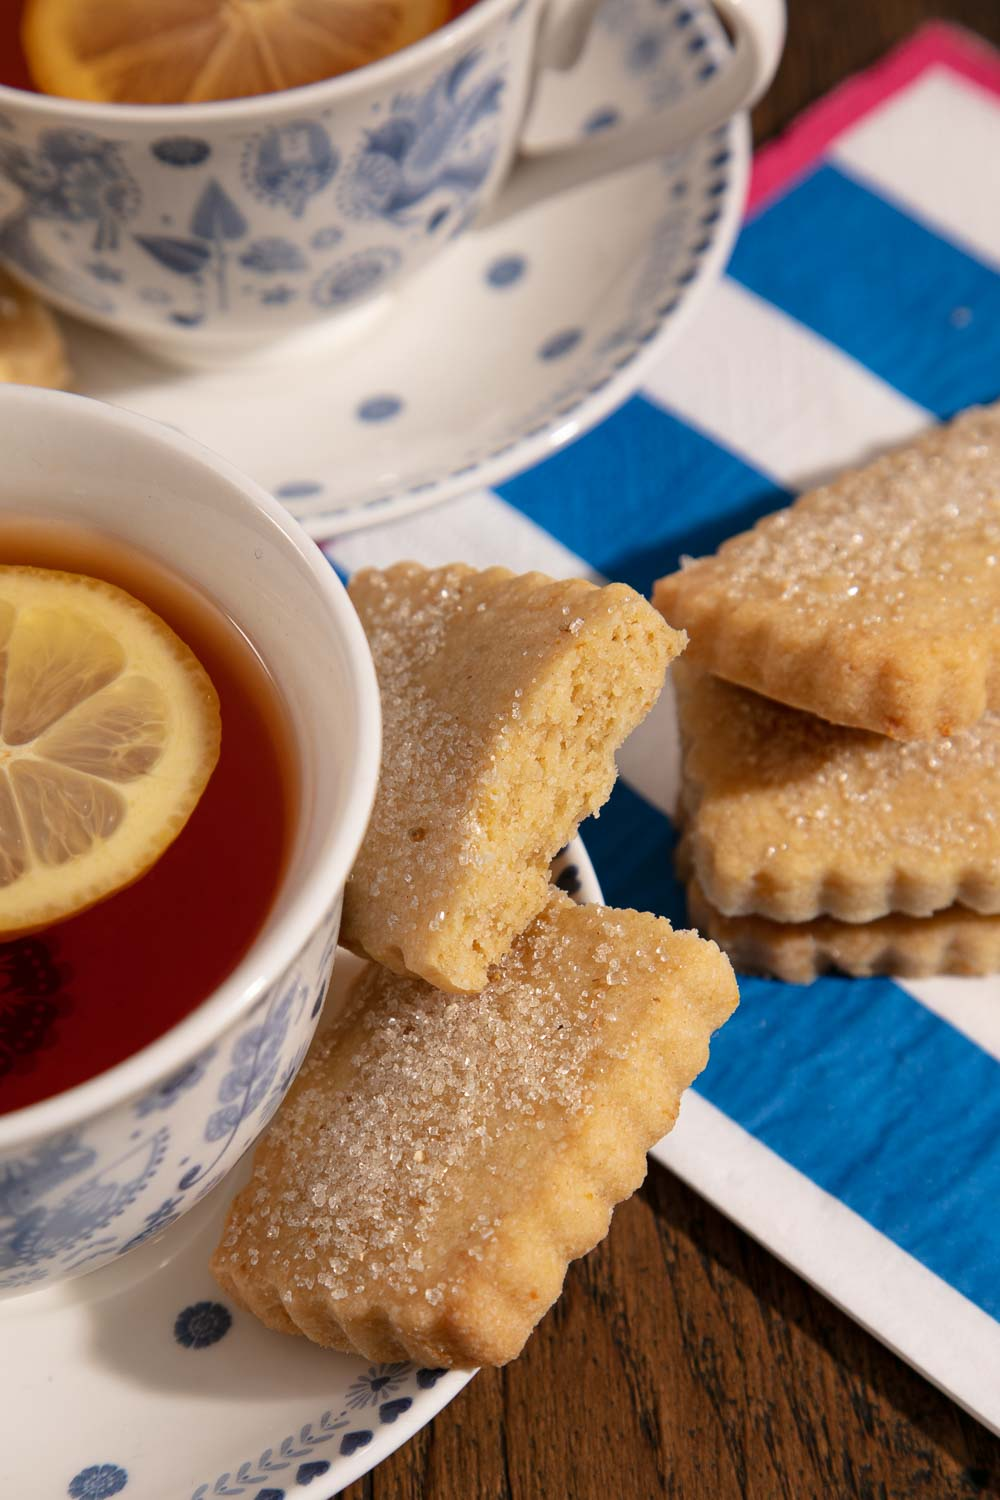 Earl Grey Tea with lemon and shortbread on blue and white striped napkins.